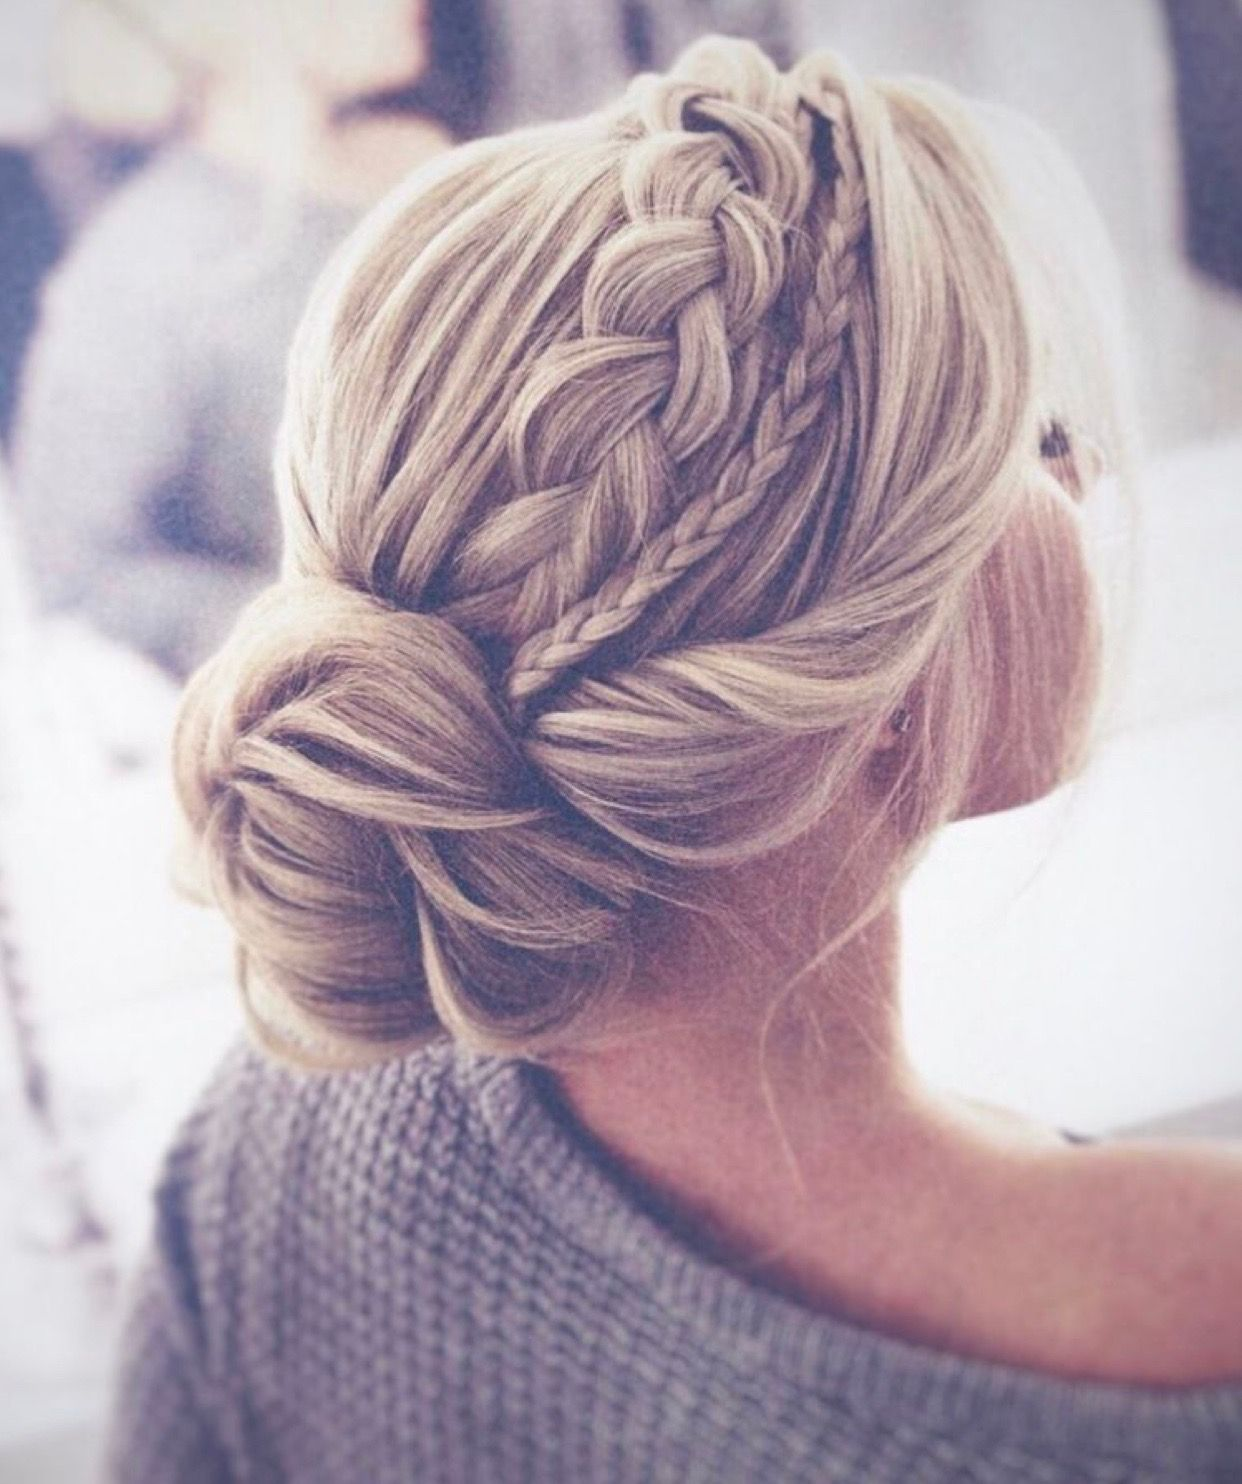 perfect braided updo twisted